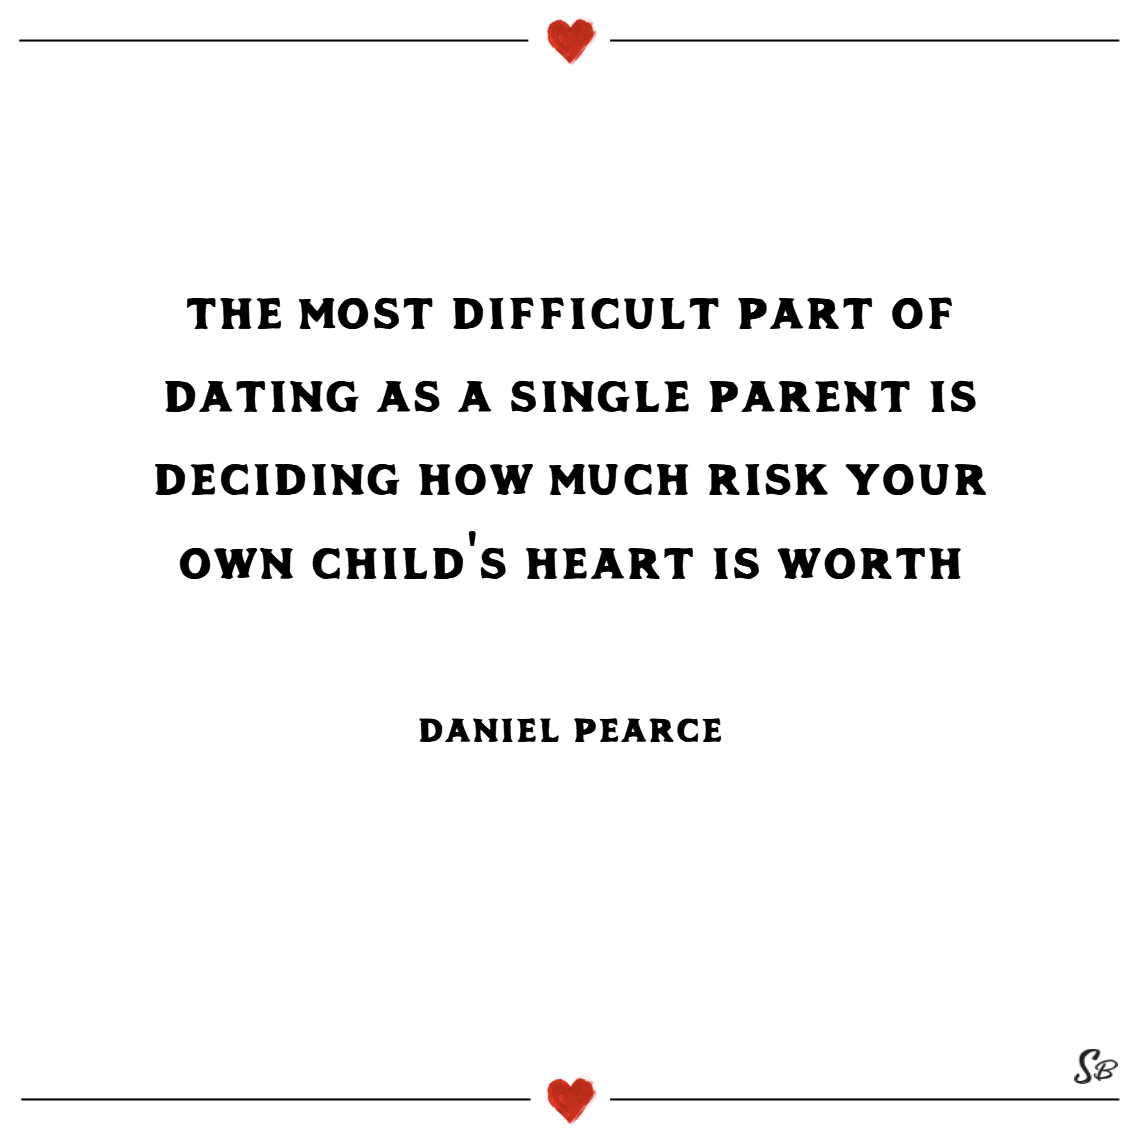 independence single parent personals It's not easy being a single parent and restarting your dating life - that's why single parent personals are the perfect choice for you join and find your match, single parent personals.